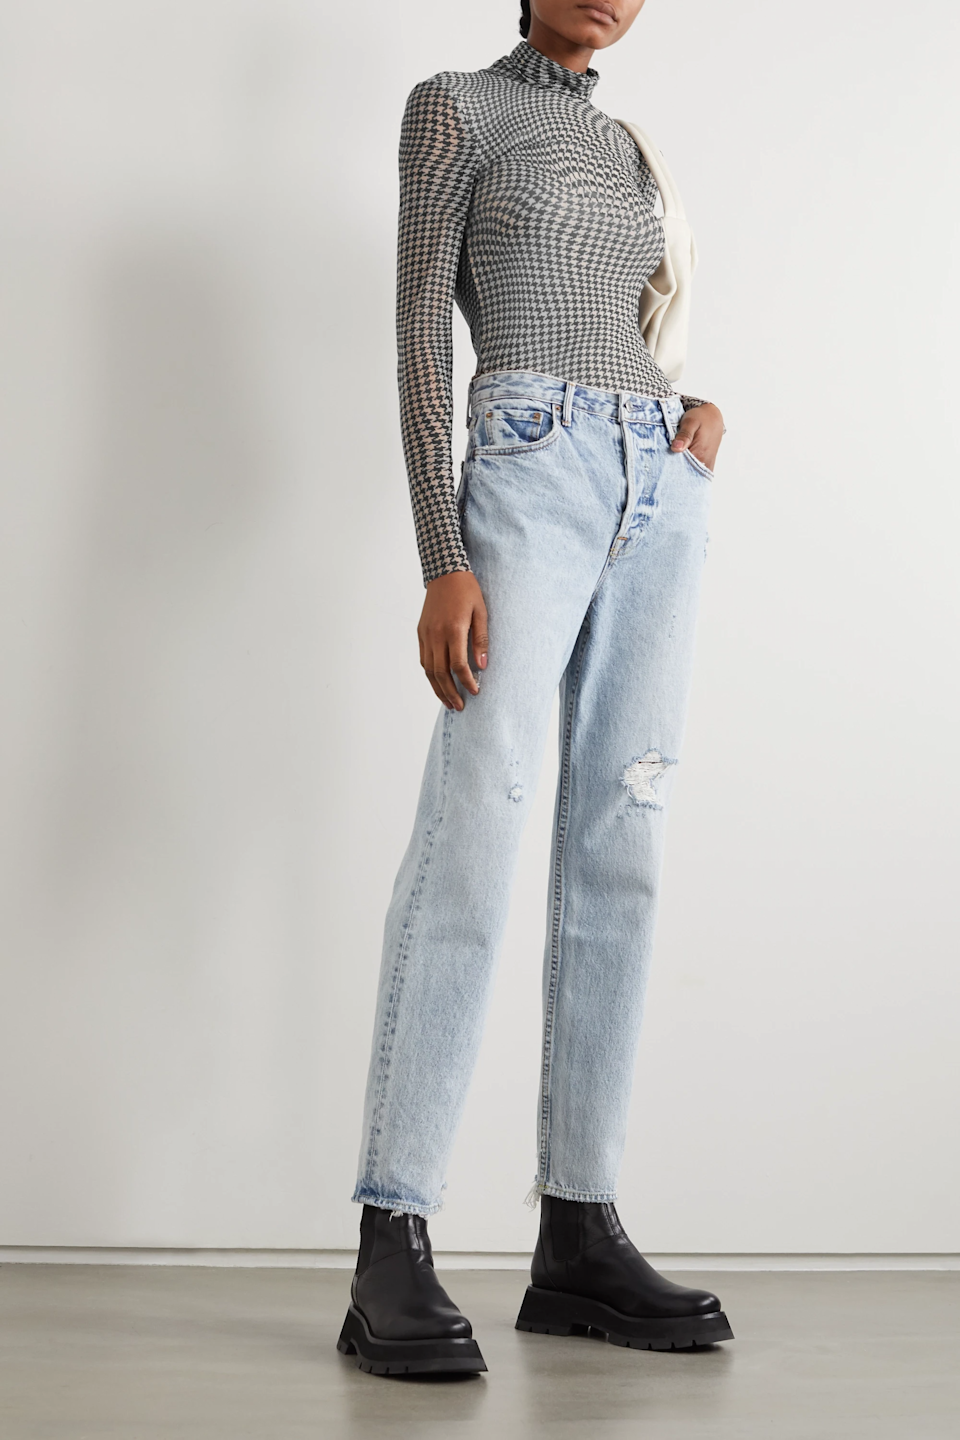 """<h2>Net-A-Porter</h2><strong>Sale:</strong> Designer sale now up to 80% off<br><strong>Dates:</strong> Ends soon<br><strong>Promo Code:</strong> None<br><br><em>Shop <strong><a href=""""https://www.net-a-porter.com/en-us/shop/sale/all/"""" rel=""""nofollow noopener"""" target=""""_blank"""" data-ylk=""""slk:Net-A-Porter"""" class=""""link rapid-noclick-resp"""">Net-A-Porter</a></strong></em><br><br><strong>Ganni</strong> Puppytooth Stretch-mesh Turtleneck Top, $, available at <a href=""""https://go.skimresources.com/?id=30283X879131&url=https%3A%2F%2Fwww.net-a-porter.com%2Fen-us%2Fshop%2Fproduct%2Fvanina%2Fdaisy-faux-pearl-and-gold-tone-tote%2F1261812"""" rel=""""nofollow noopener"""" target=""""_blank"""" data-ylk=""""slk:Net-A-Porter"""" class=""""link rapid-noclick-resp"""">Net-A-Porter</a>"""